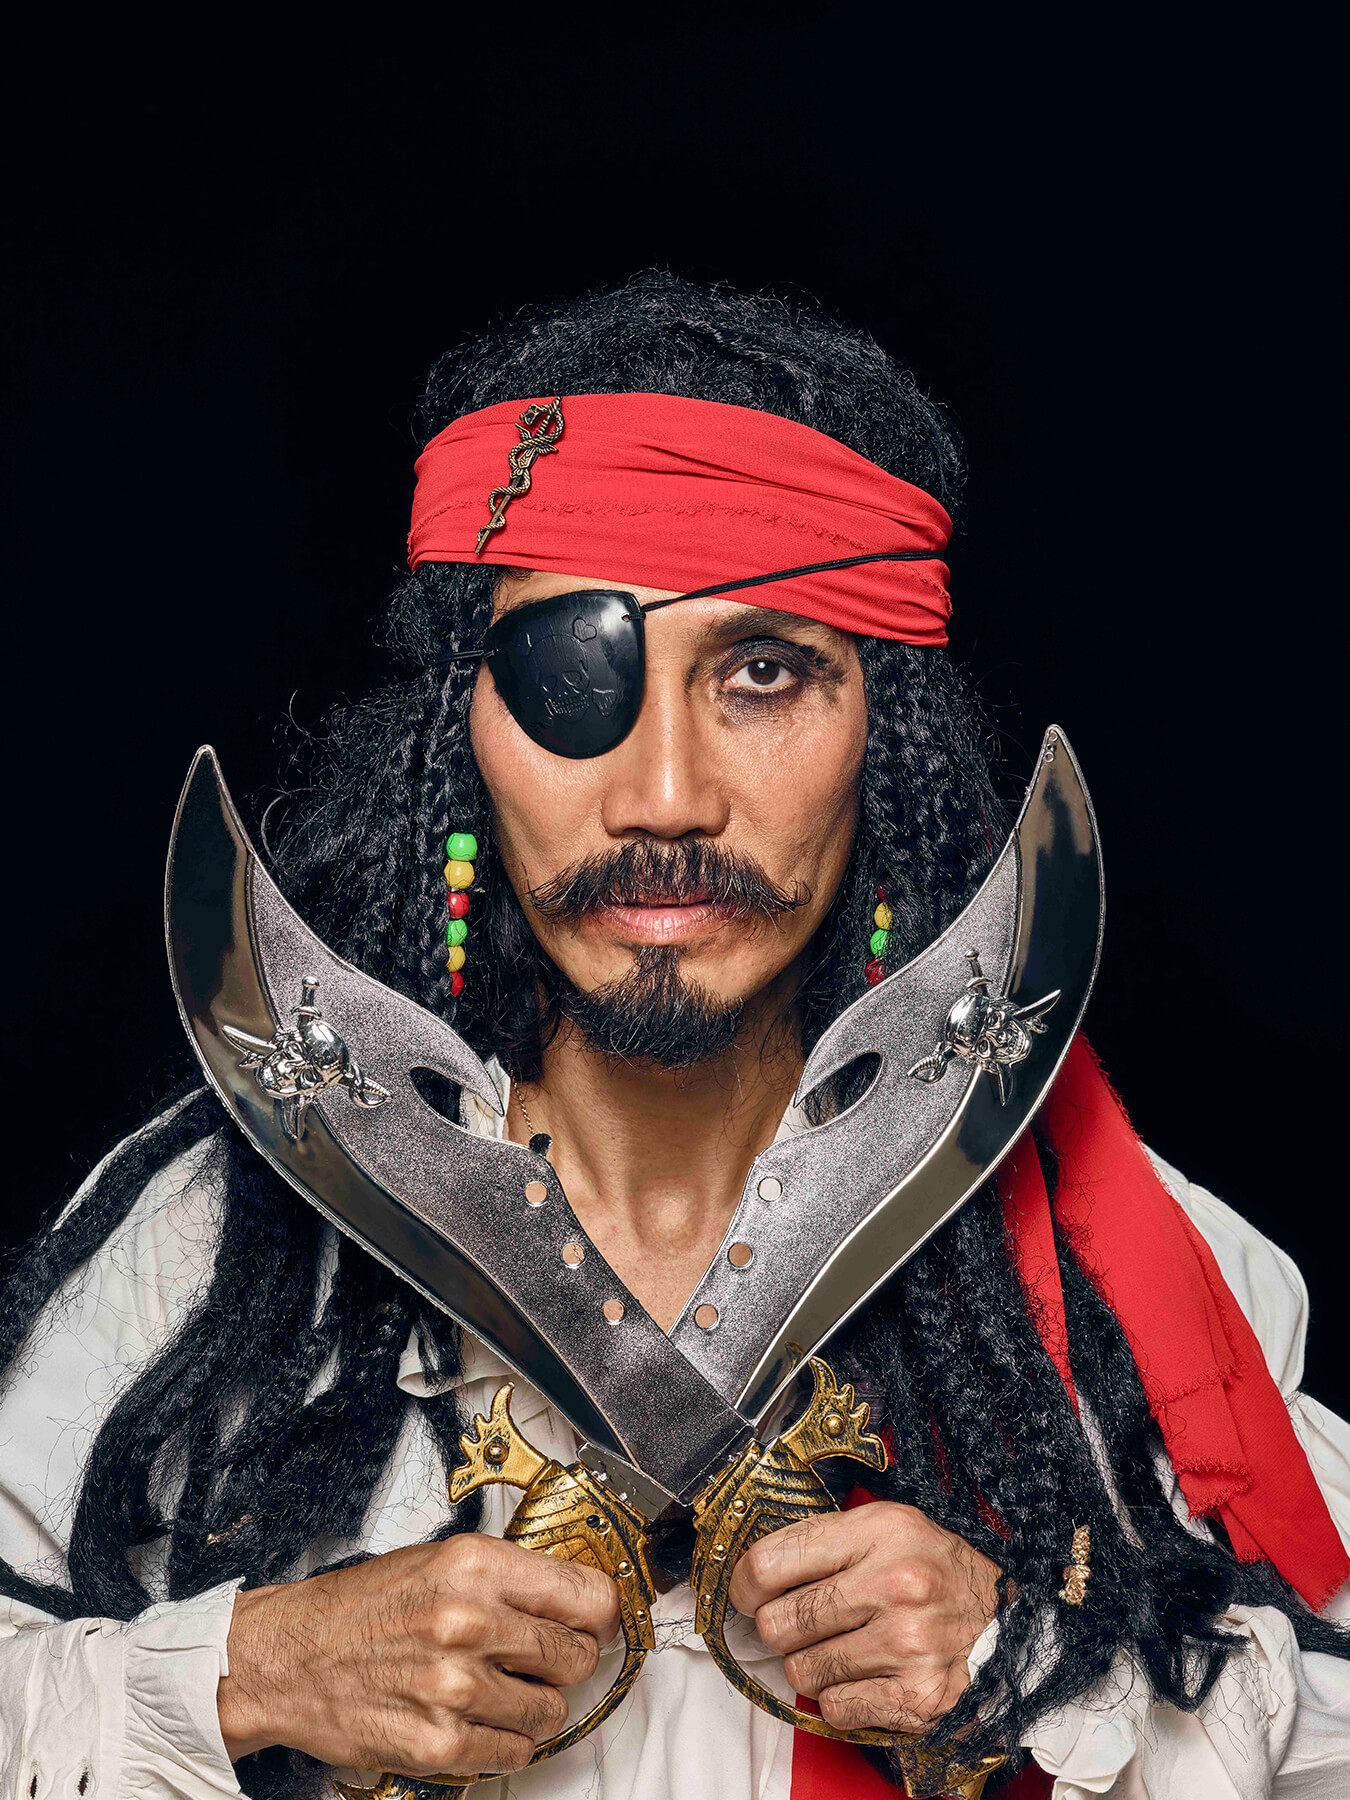 21 Oct 2017 Derong is styled as a pirate